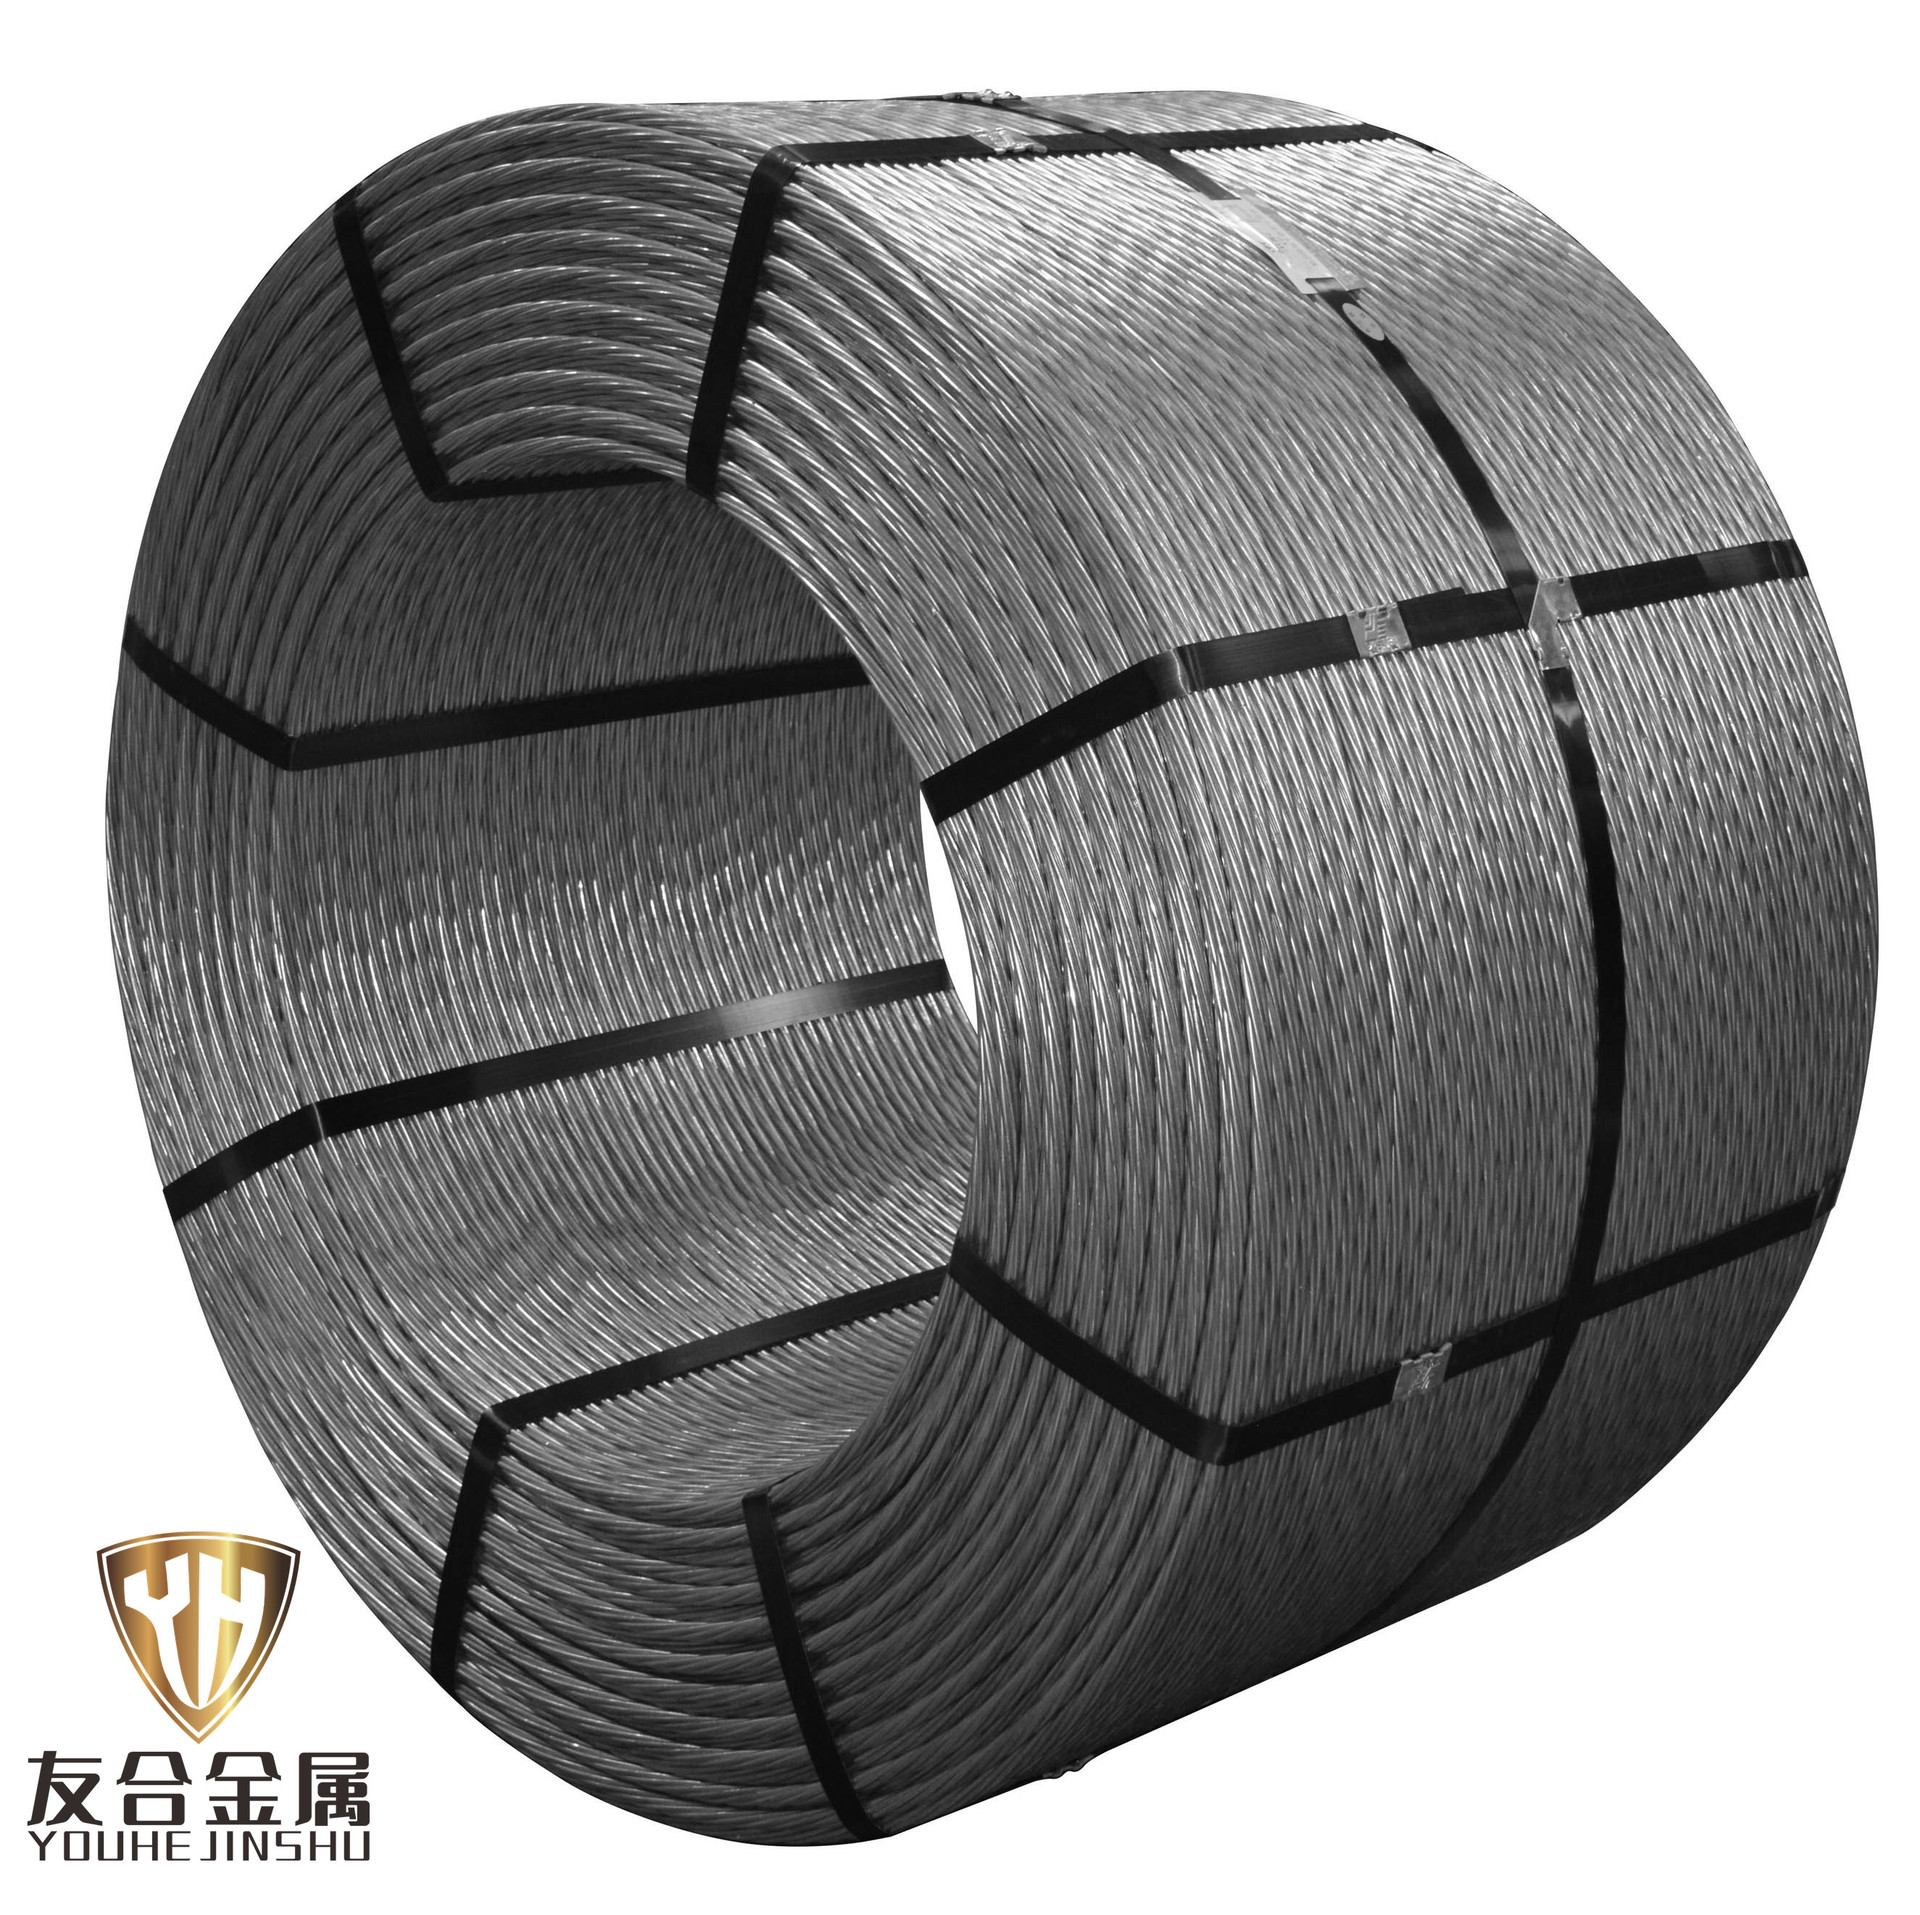 YOUHE Tianjin prestressed steel strand manufacturer 15.2 mine anchor cable steel strand 1 * 7